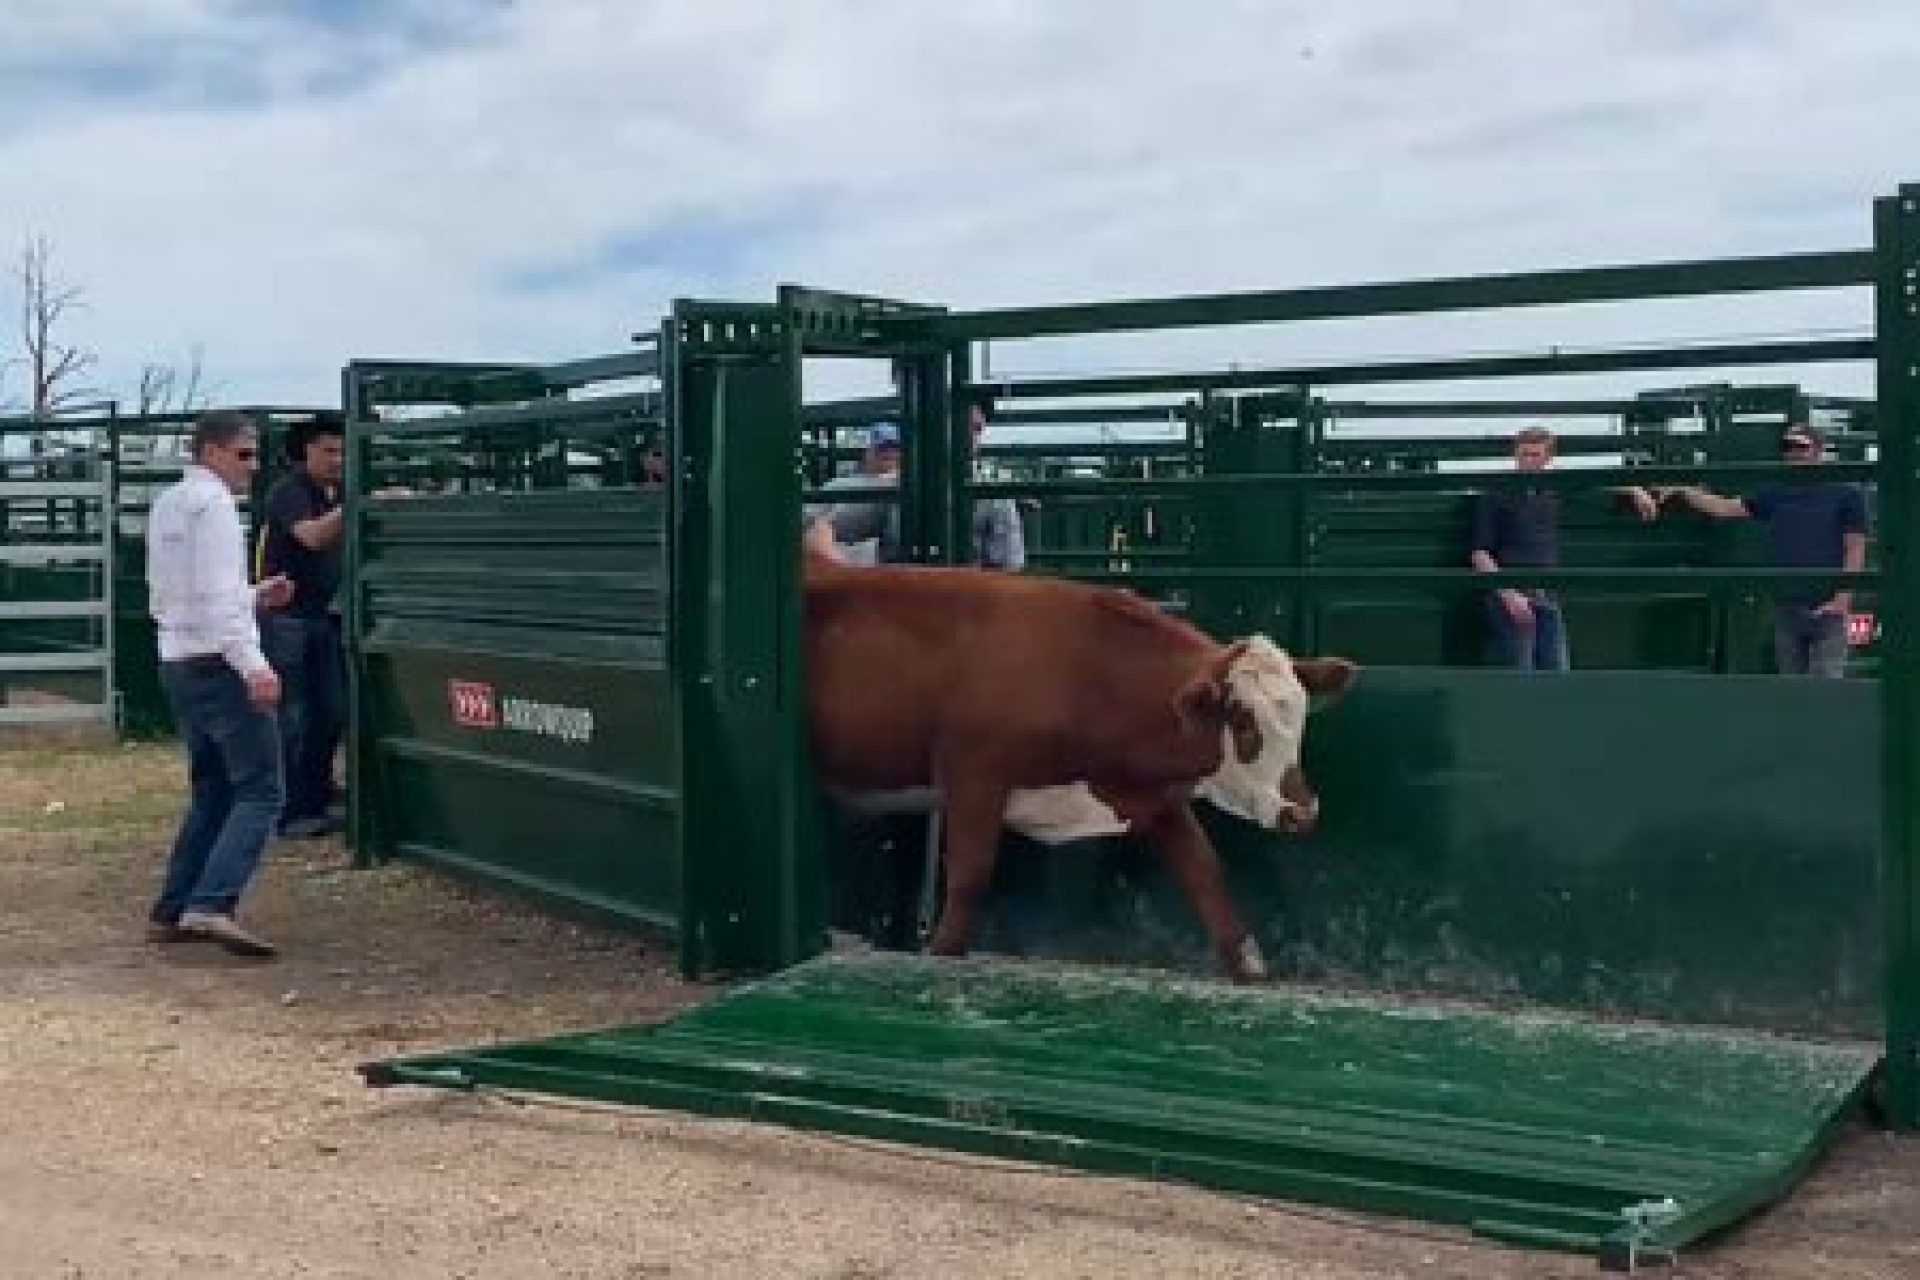 Cow exiting a cattle alley through the side